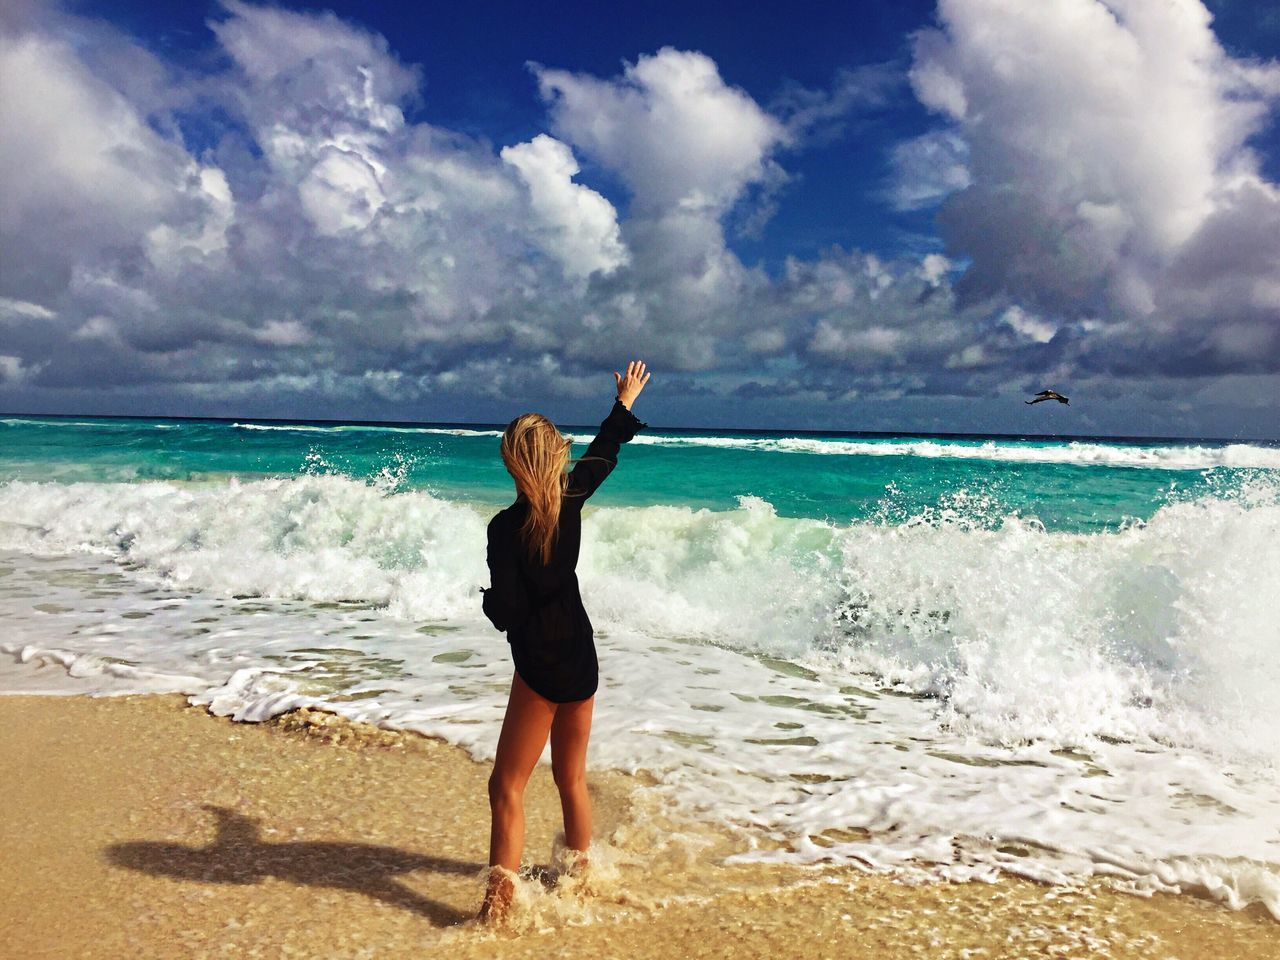 Mexico Atlantic Ocean Yucatan Mexico Cancun Caribbean Ocean Bird Women Sea Beach Sand Full Length Water Horizon Over Water Sky Vacations Wave Excitement Outdoors One Person Day Nature Beauty In Nature People Destination